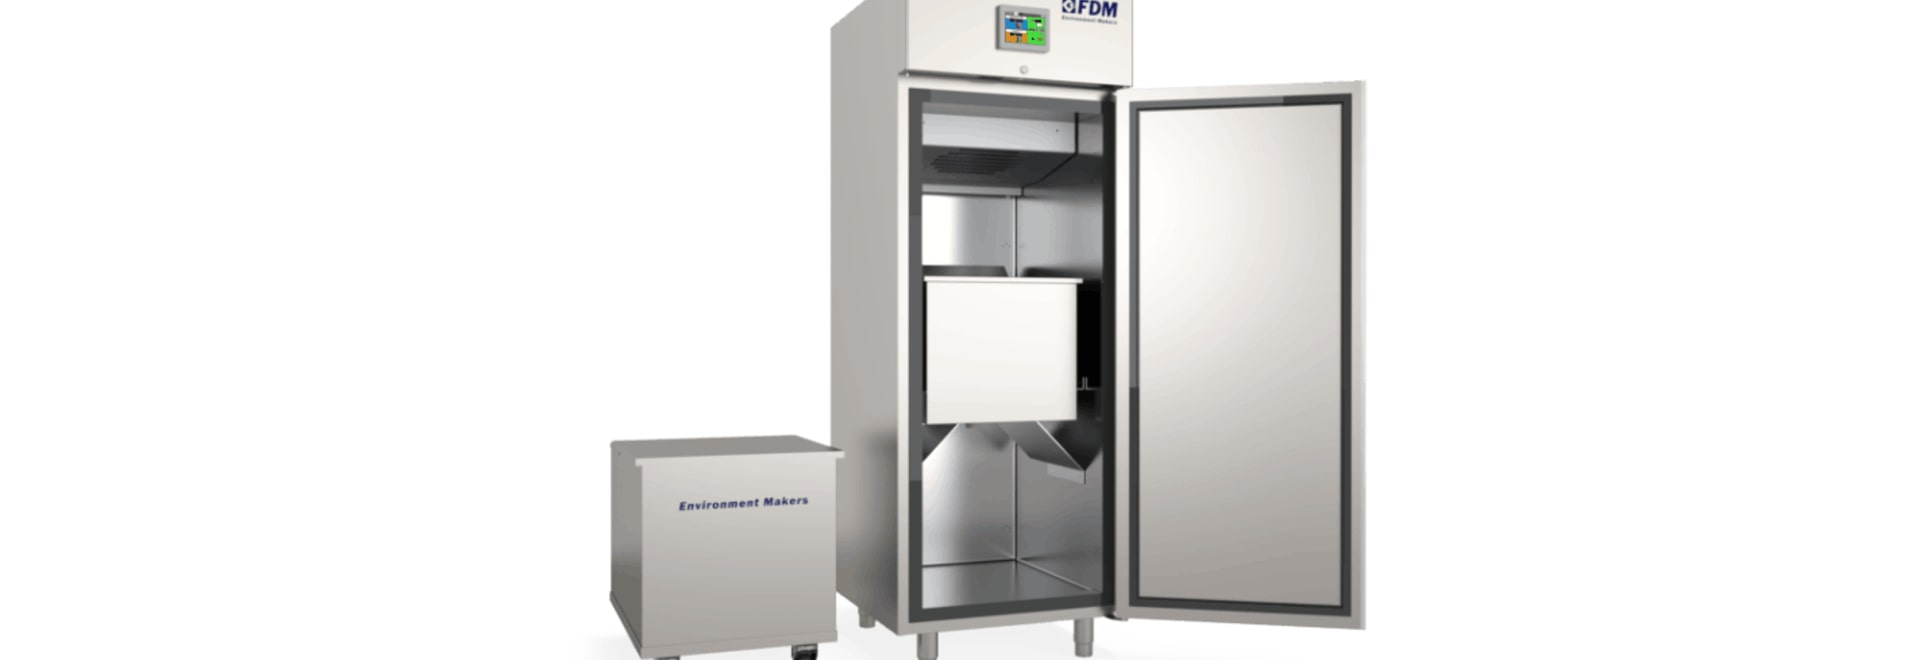 Environmental Chamber for Frost Susceptibility Testing